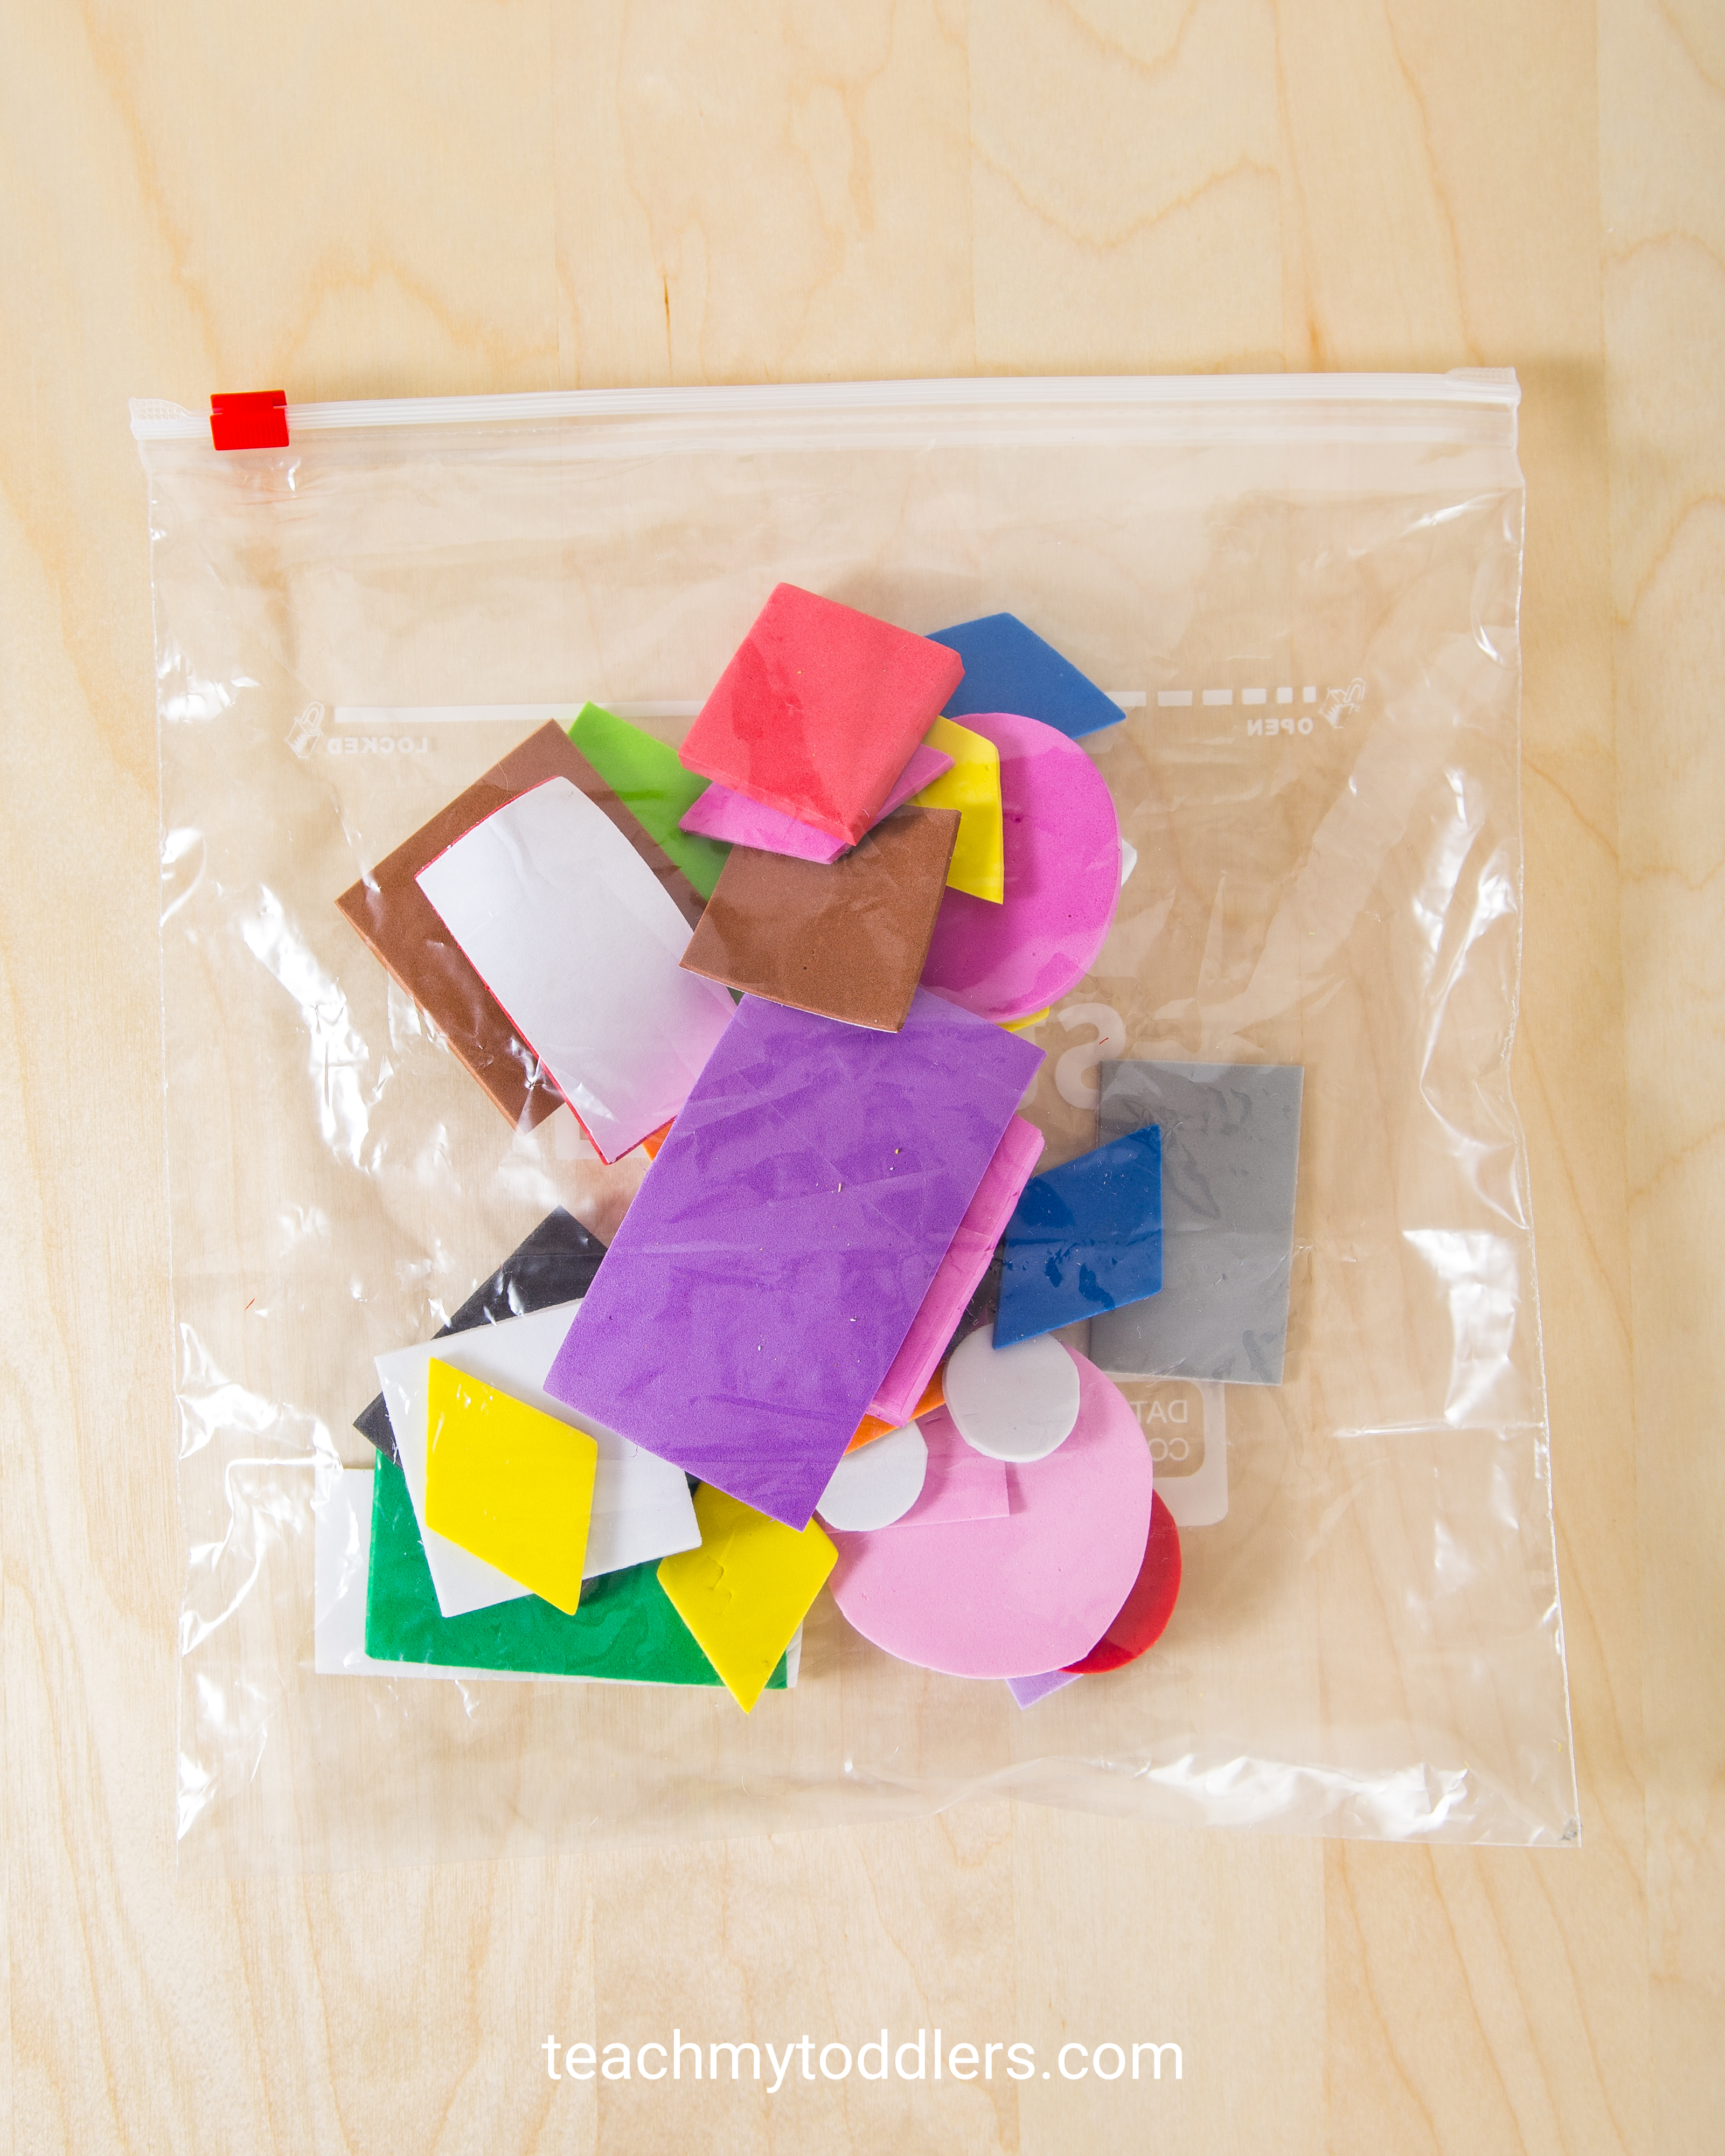 Teach toddlers shapes with this exciting shape sorting game